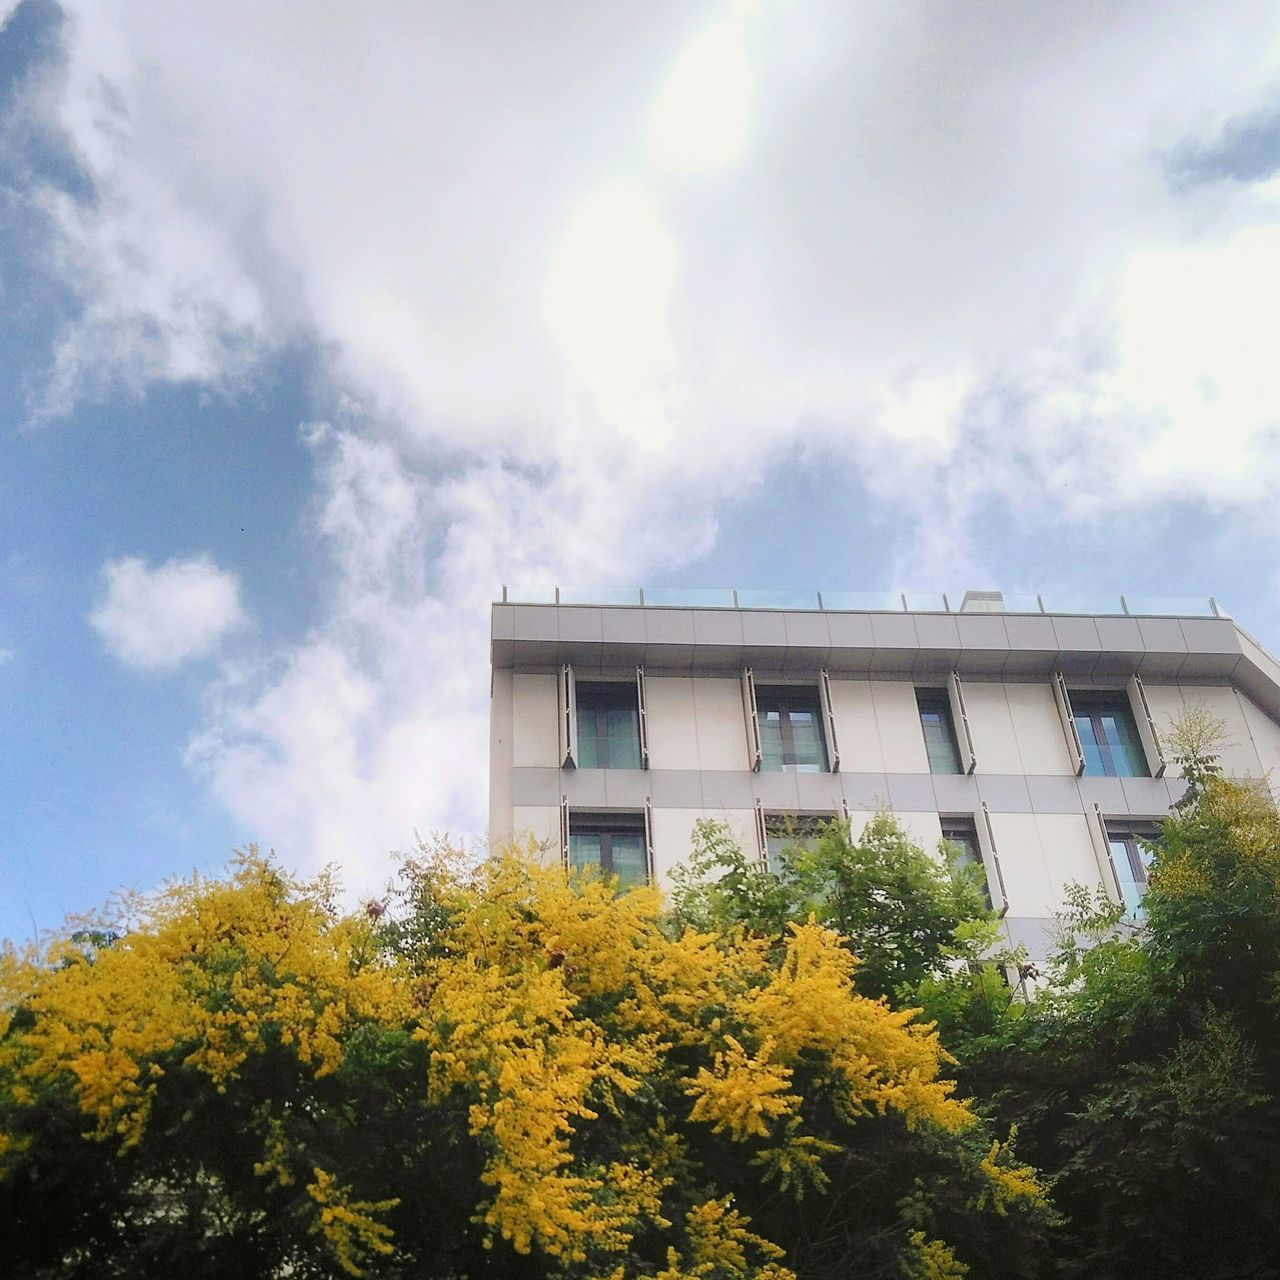 building exterior, tree, architecture, low angle view, yellow, built structure, day, outdoors, sky, no people, plant, cloud - sky, growth, nature, flower